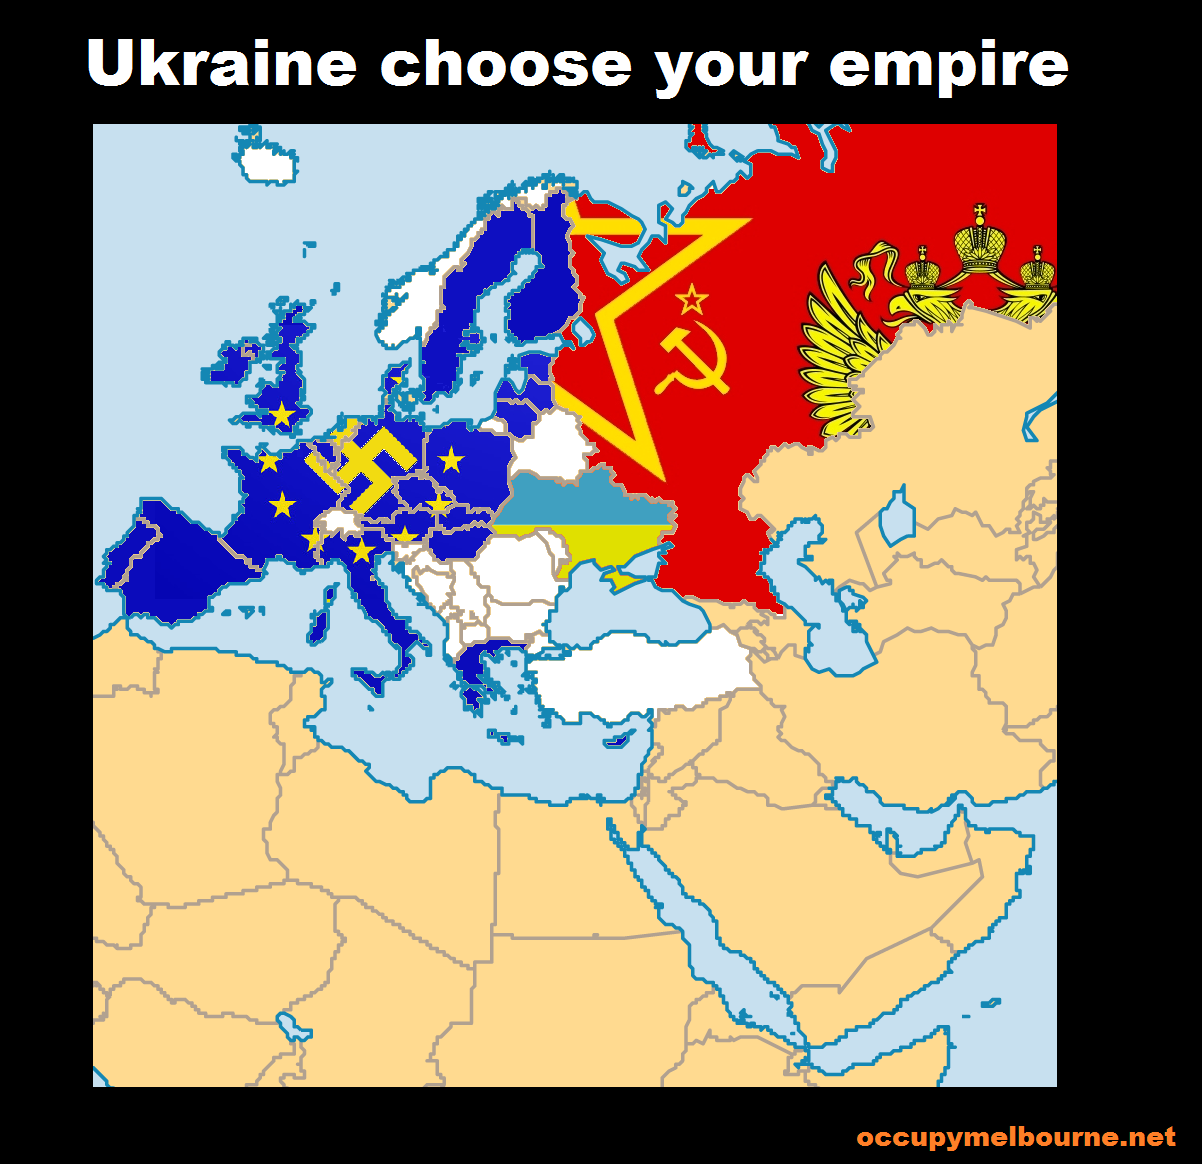 Ukraine's options